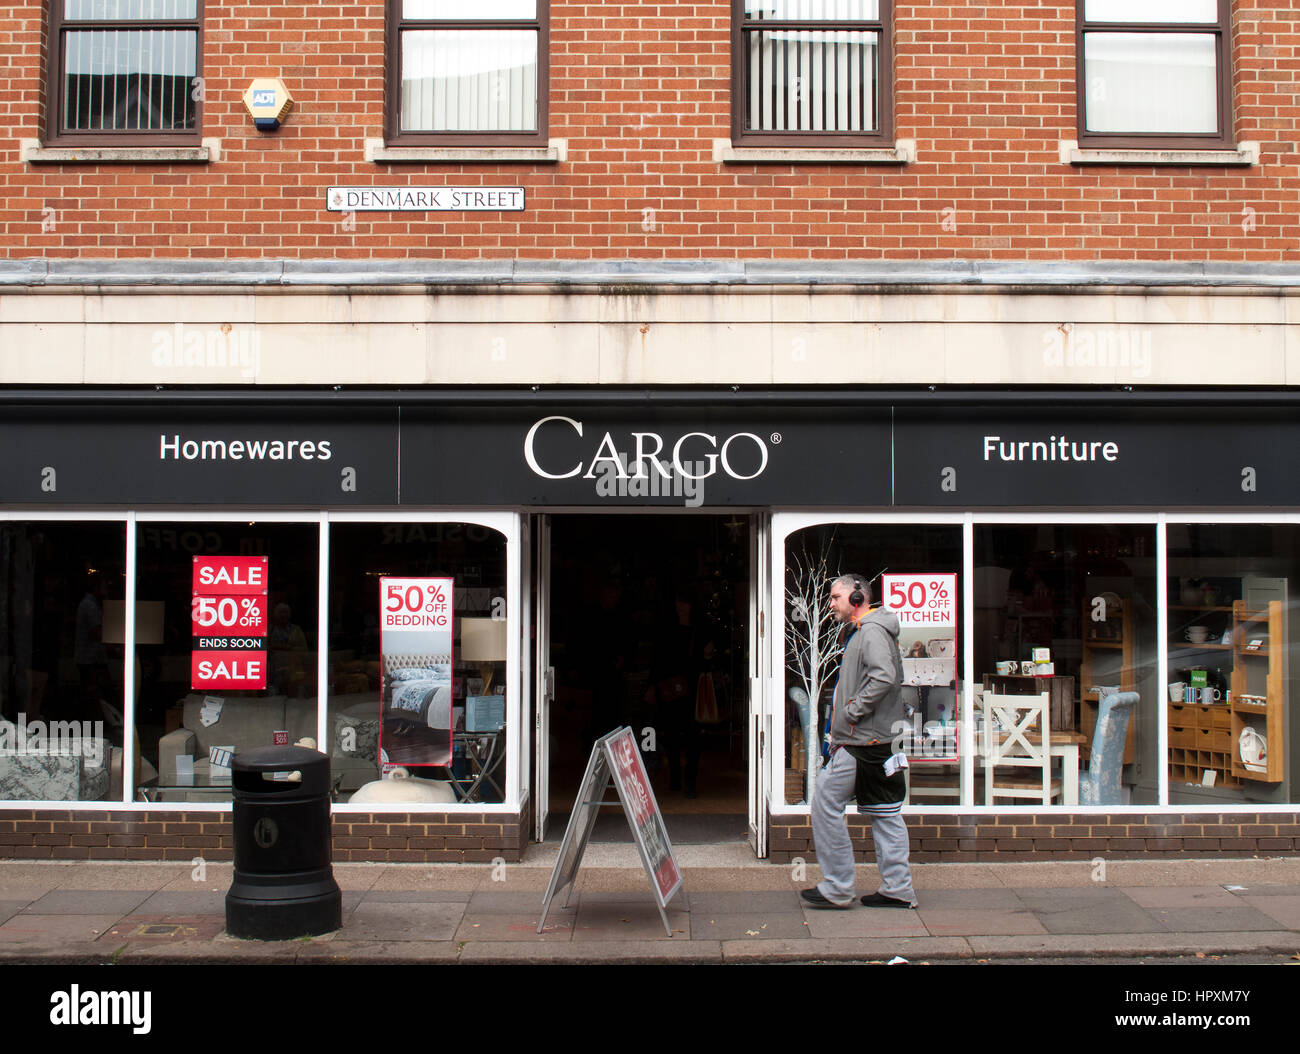 Amazing Cargo Store, Part Of The Steinho Group, Furniture And Homewares Retailers,  Established In 1876 By J W Carpenter